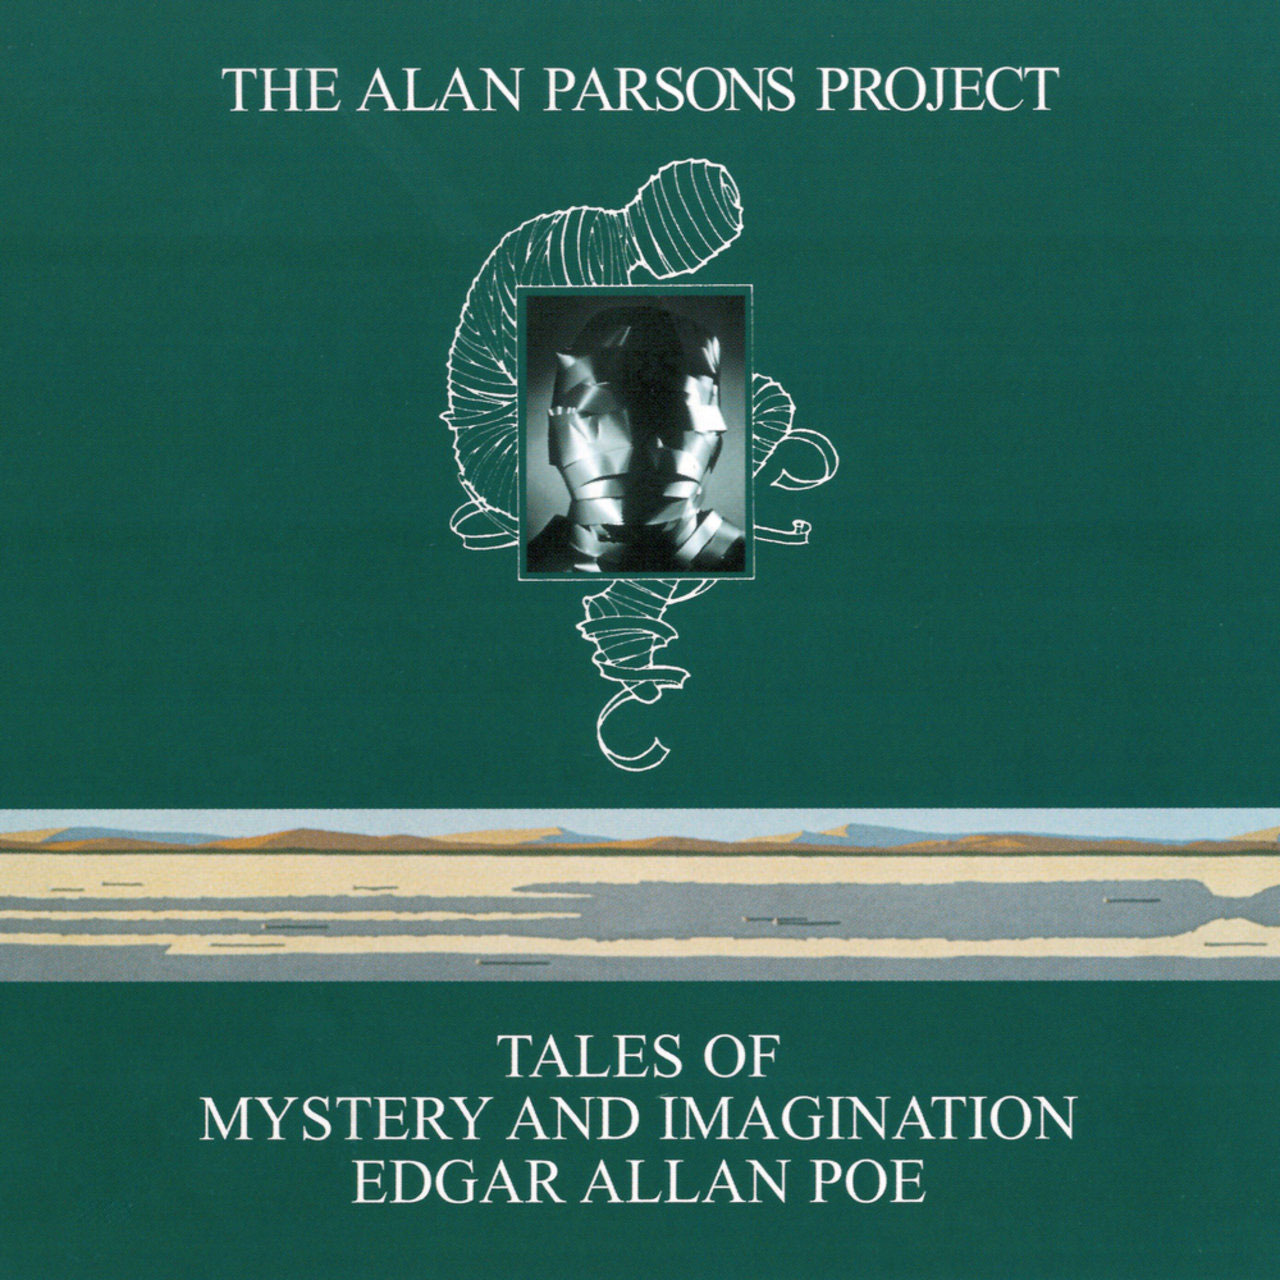 Music review of The Alan Parsons Project Album Tales of Mystery and Imagination Edgar Allan Poe on Severed Cinema